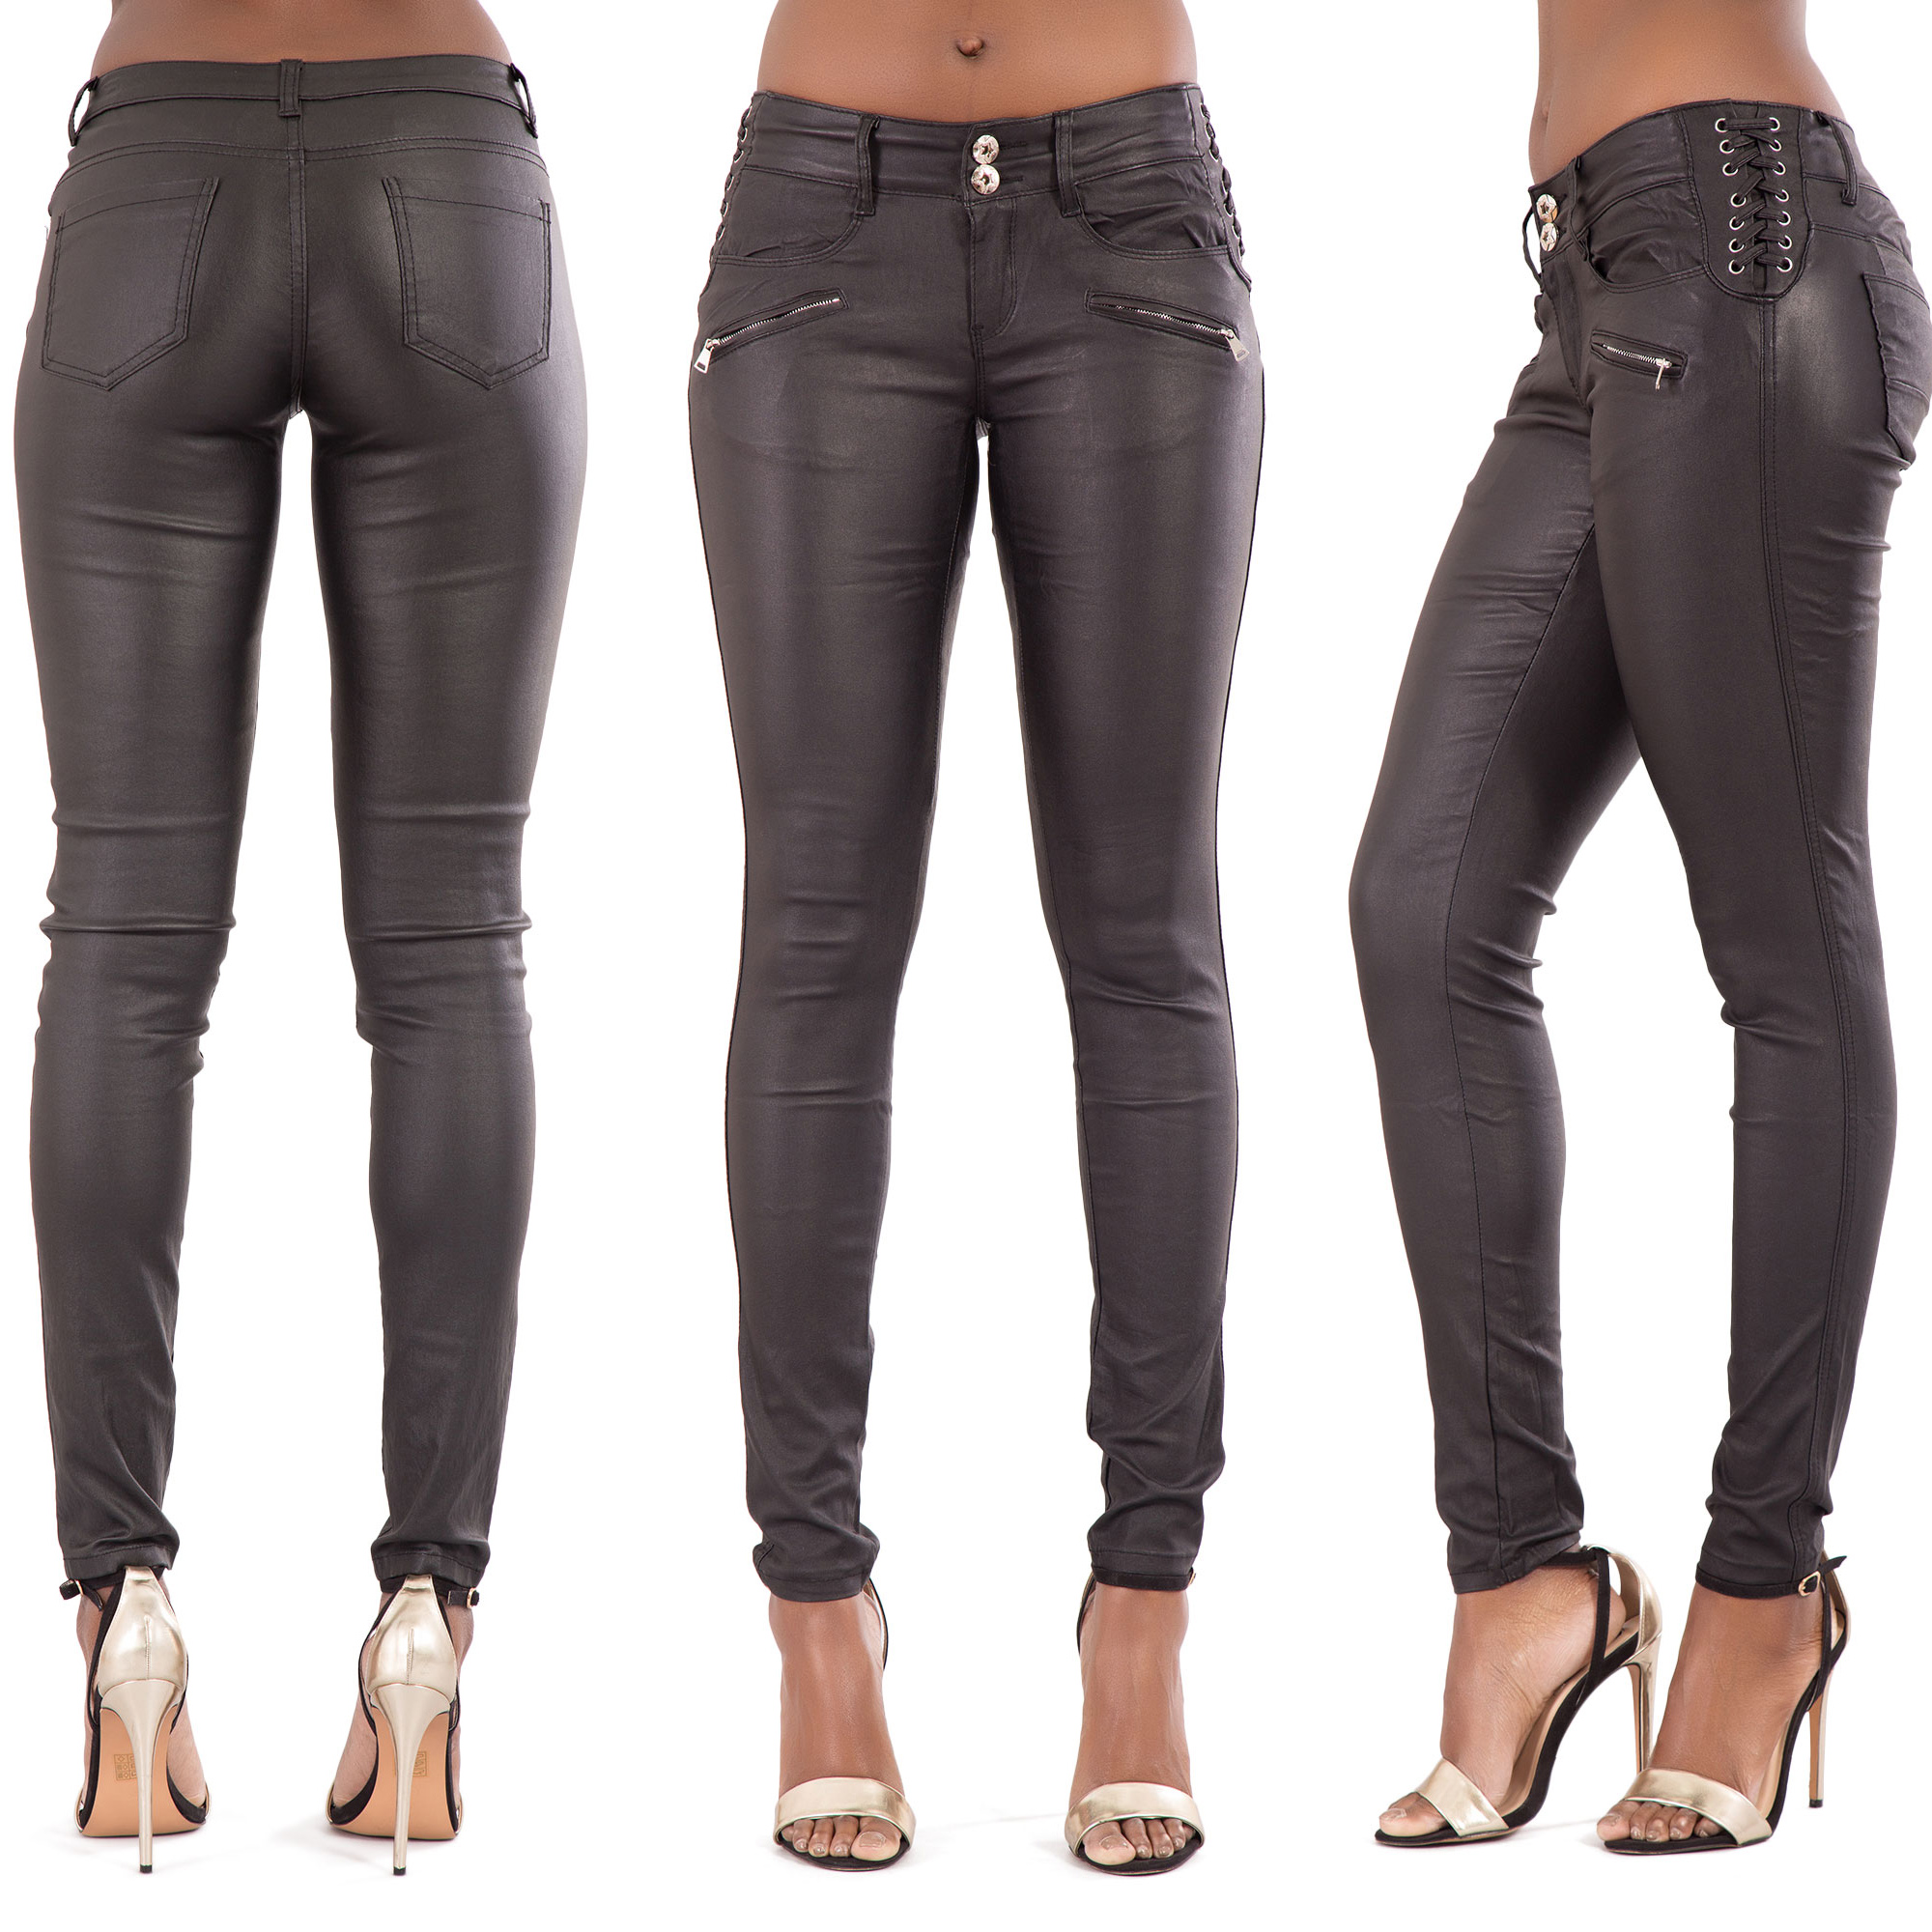 Women's Slim fit Jeans provide the signature slimming fit look that's keeps you looking stylish. Find perfect fitting clothing at NYDJ.